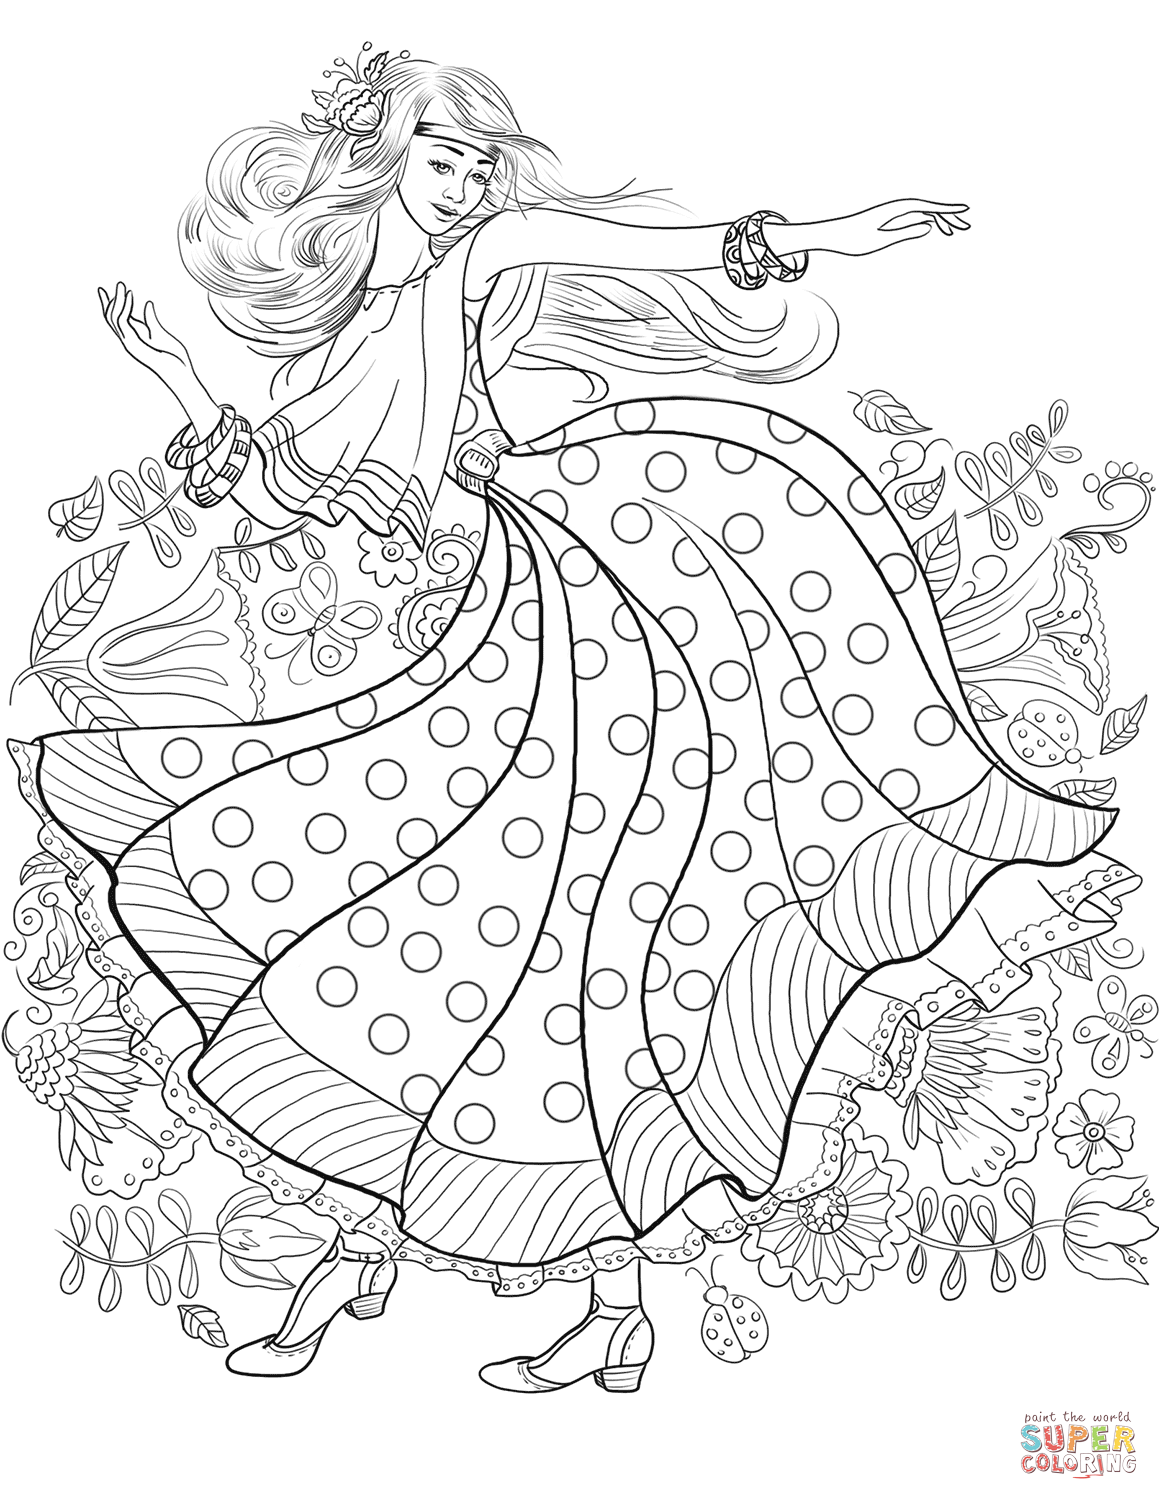 60s coloring sheets lady from 6039s coloring page free printable coloring pages 60s sheets coloring